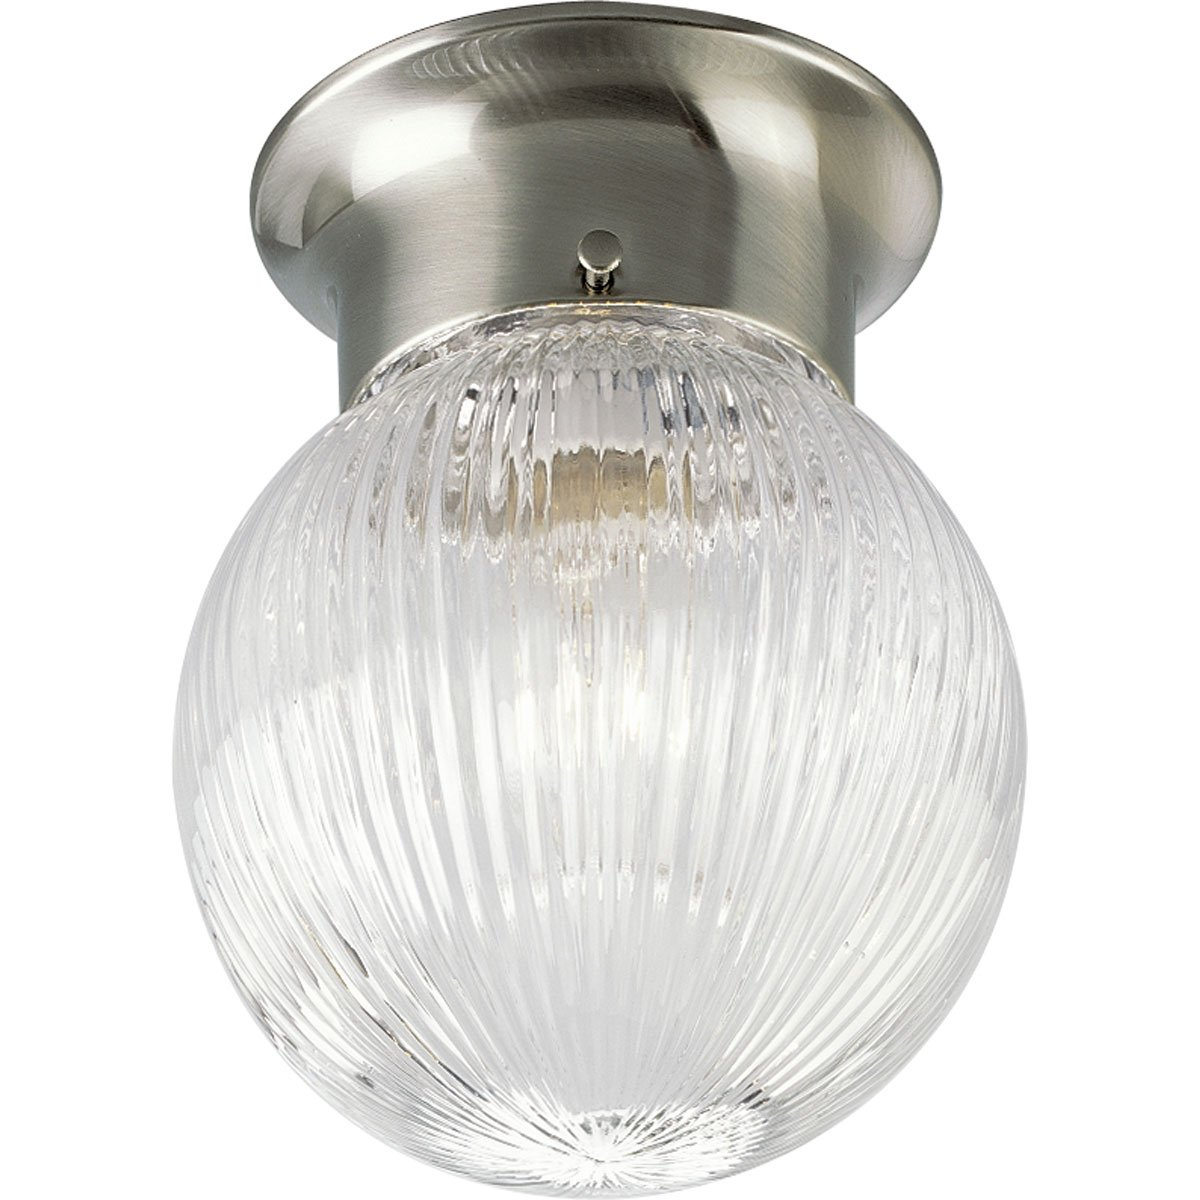 Progress lighting p3599 09 1 light close to ceiling fixture brushed progress lighting p3599 09 1 light close to ceiling fixture brushed nickel flush mount ceiling light fixtures amazon mozeypictures Images